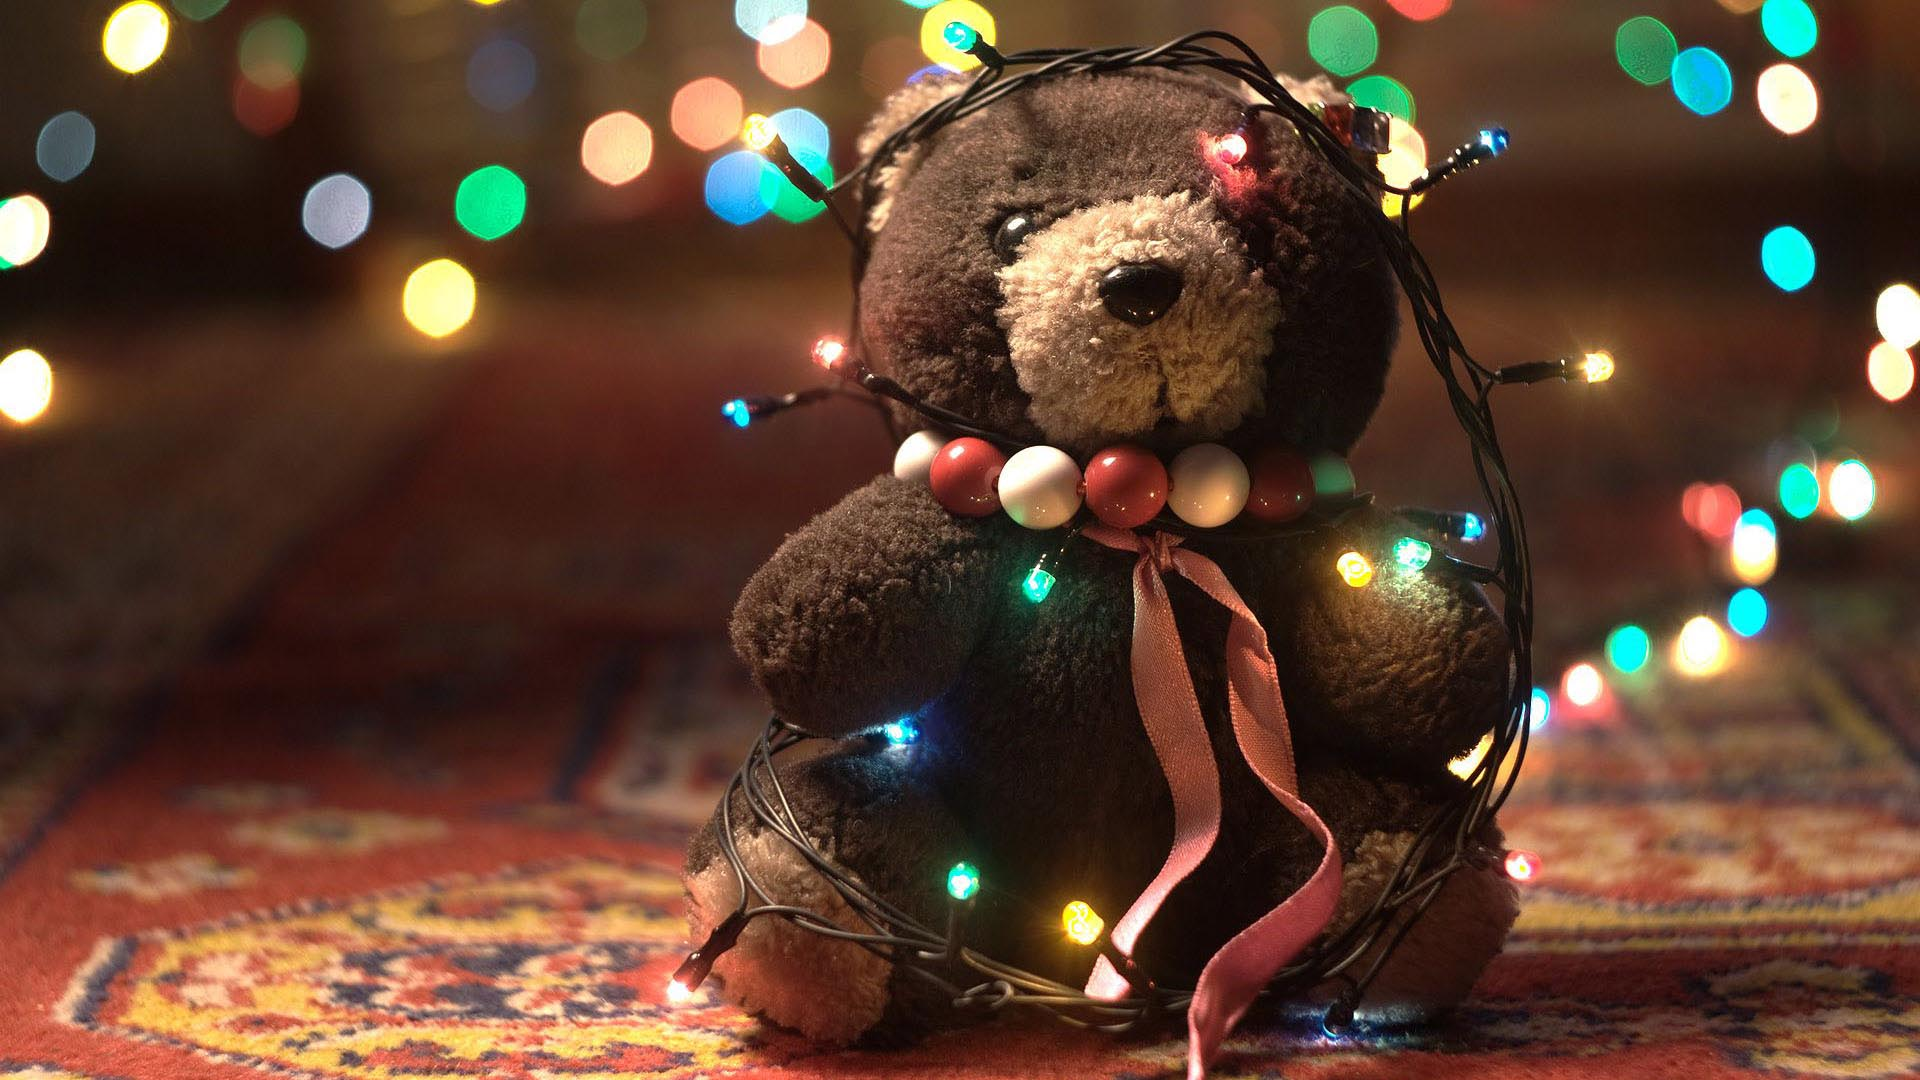 Christmas Teddy Bear Wallpaper: Christmas Lights Wallpapers